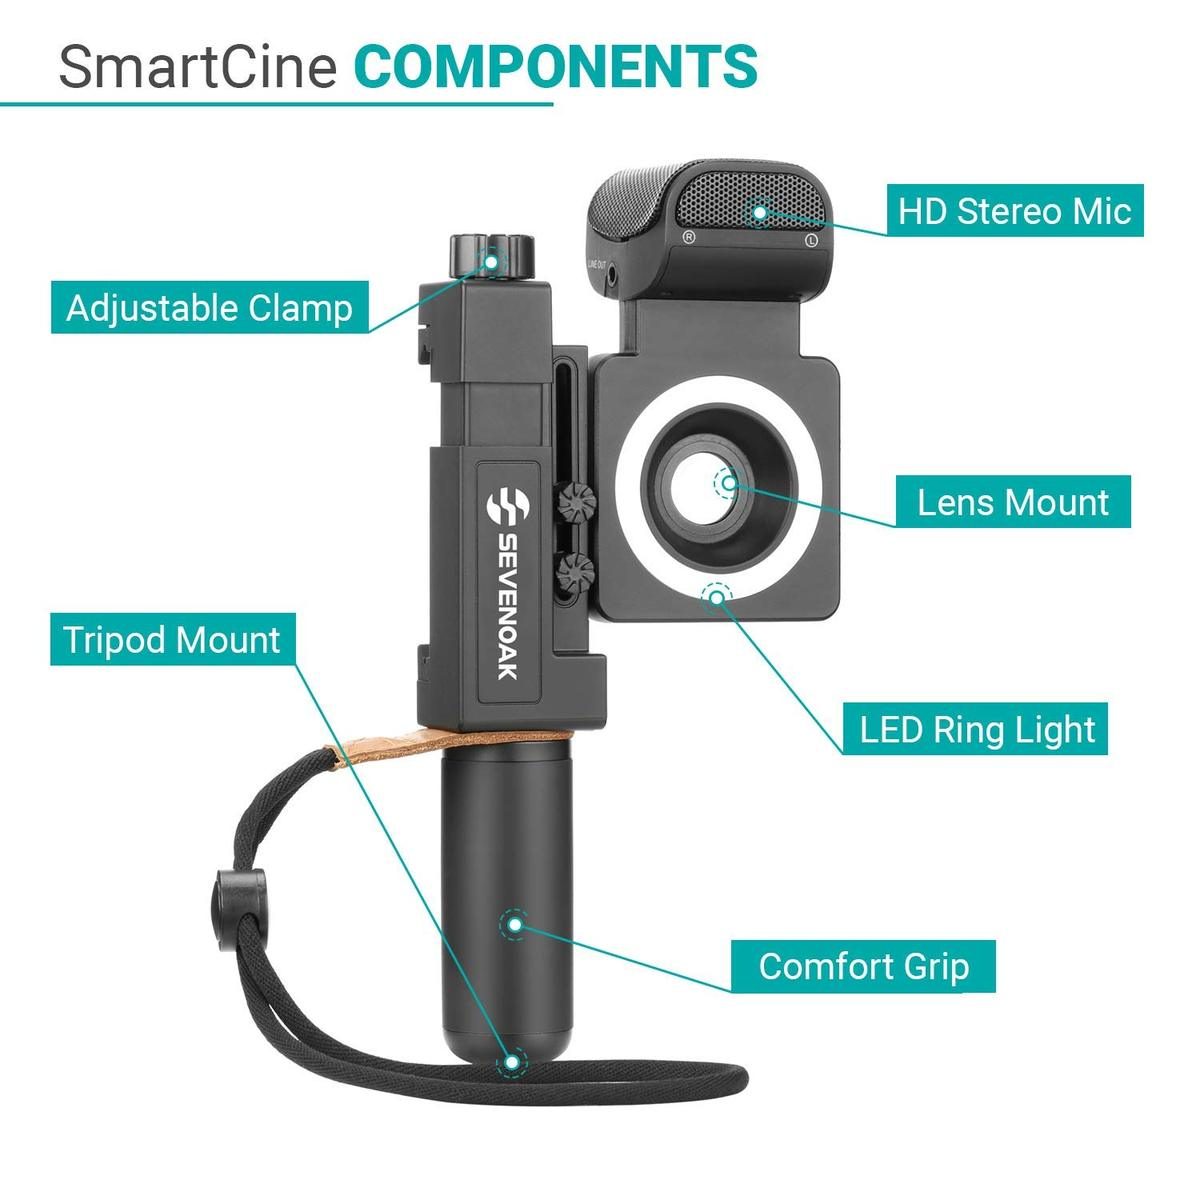 How to Setup the MOVO SmartCine Complete Universal Smartphone Video Kit